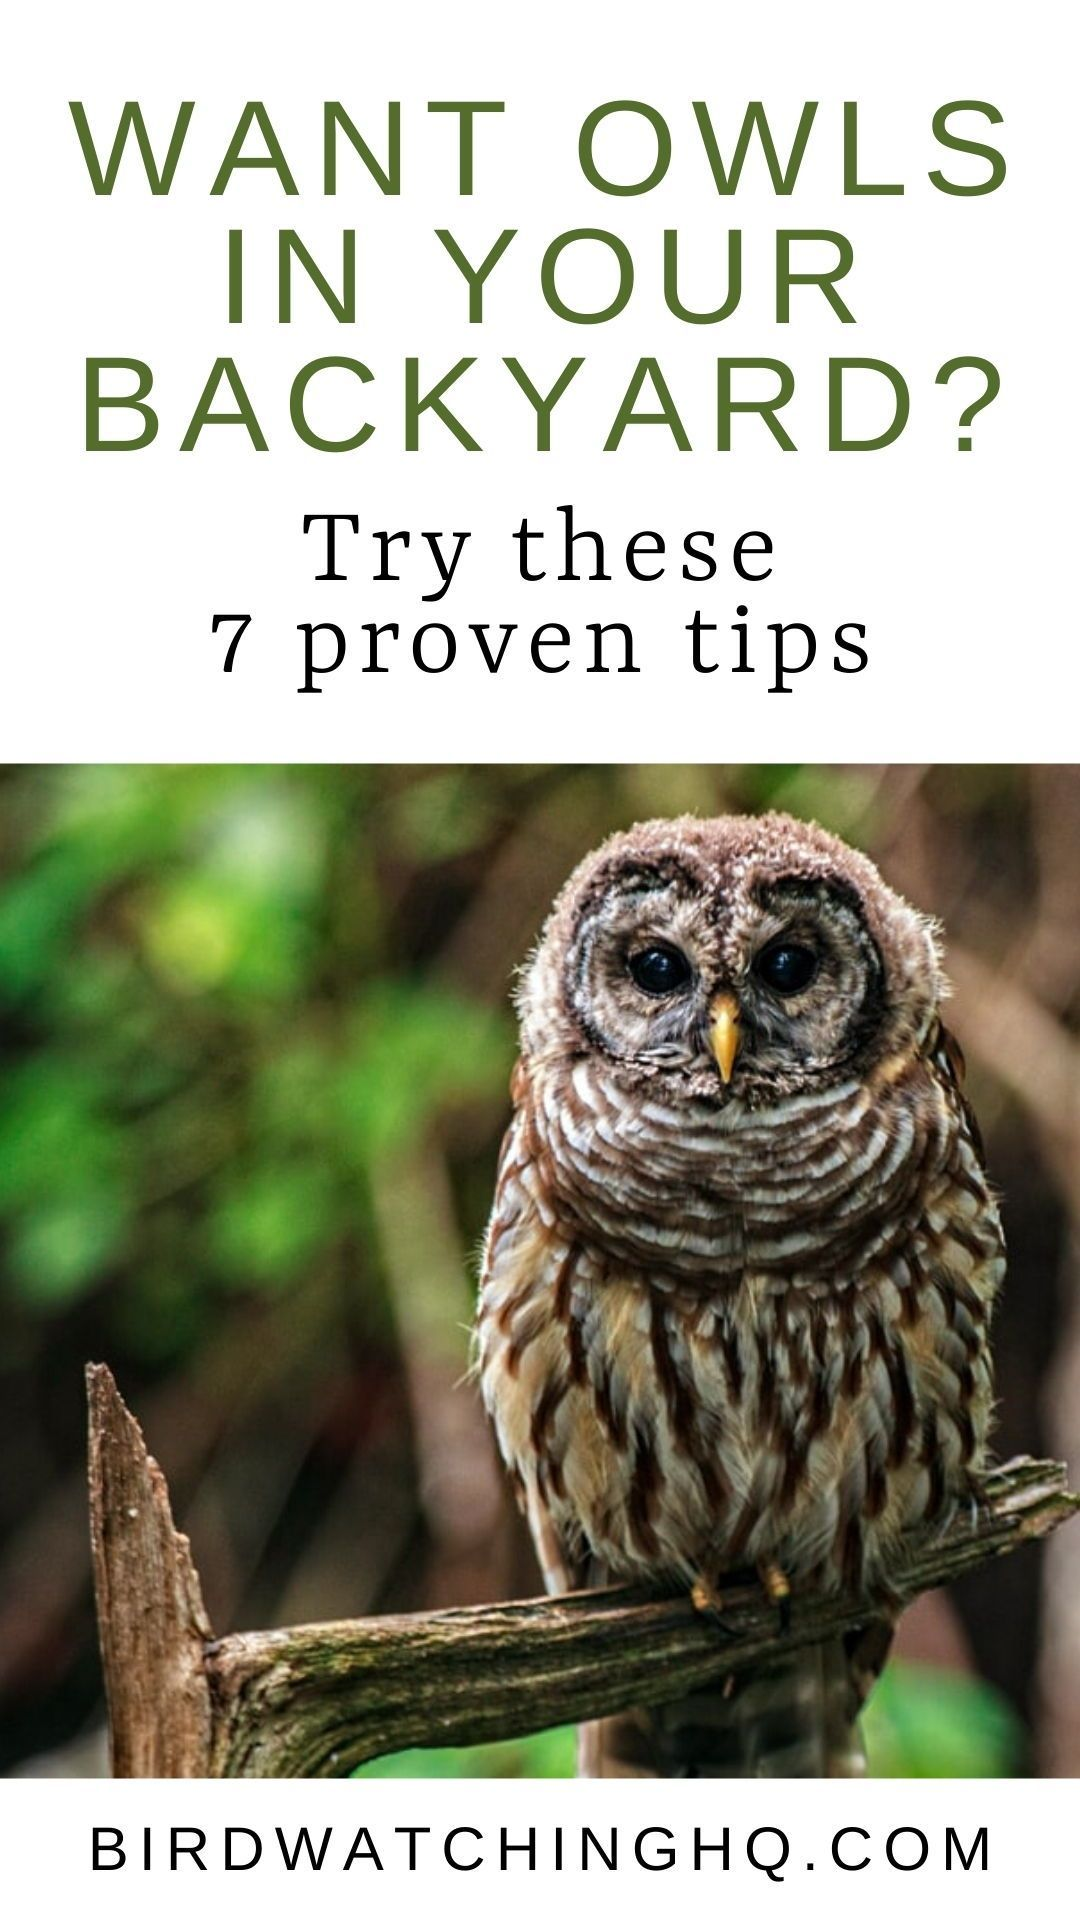 7 Proven Ways To Attract Owls 2021 Bird Watching Hq Backyard Birds Watching Backyard Animals Backyard Birds Sanctuary